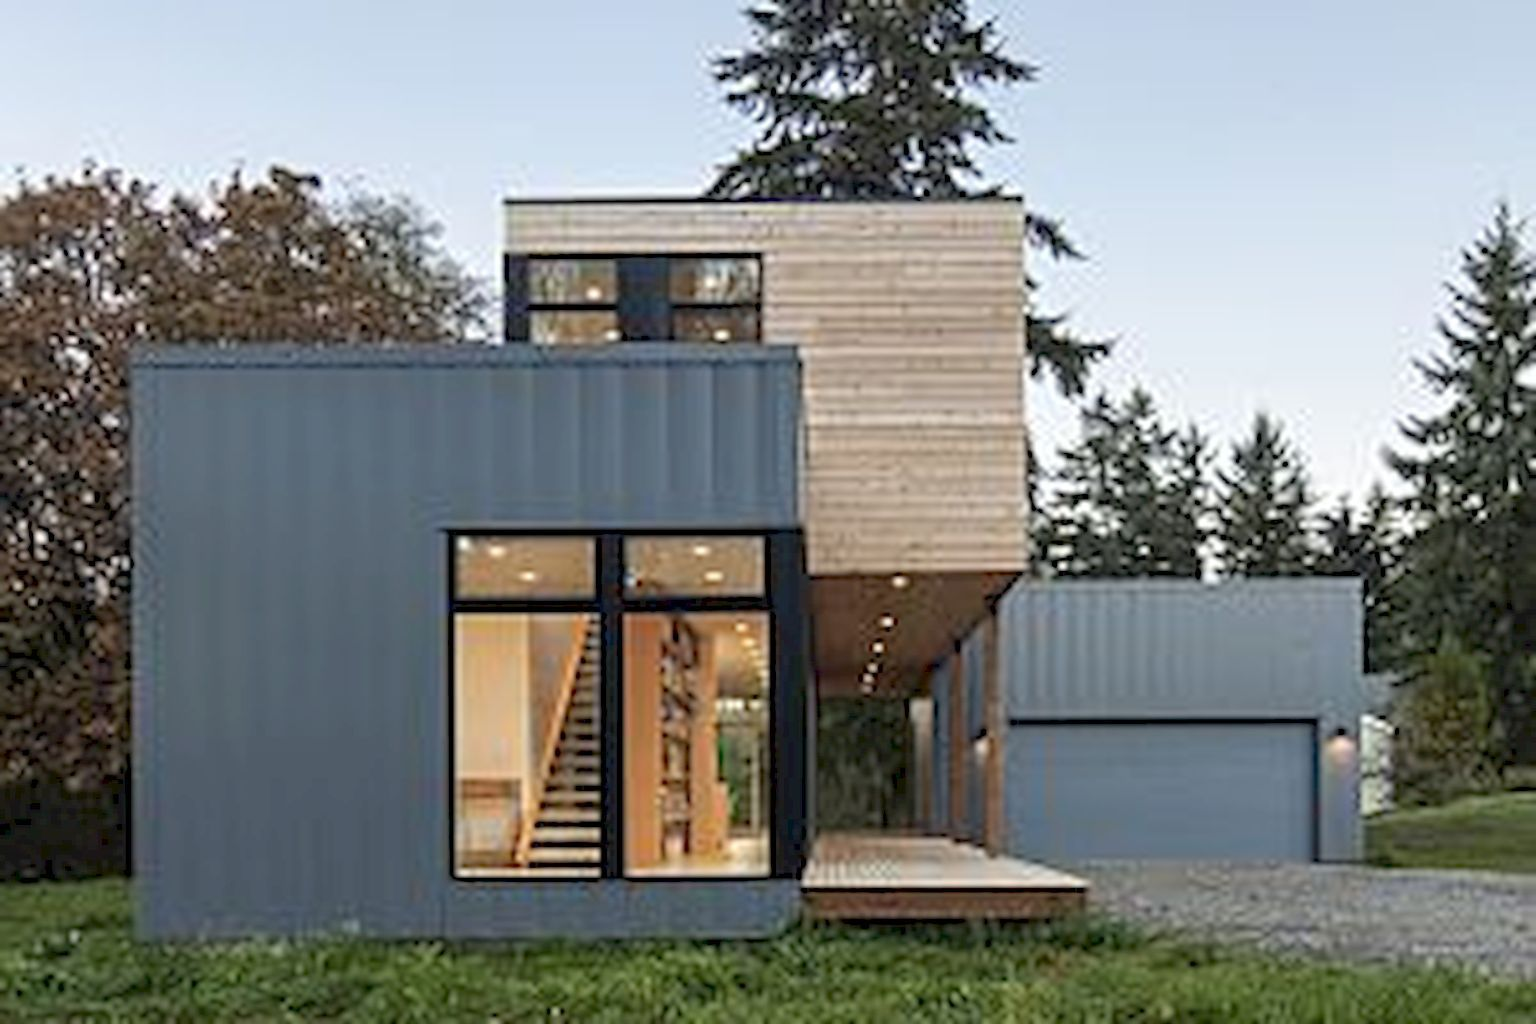 65 Gorgeous Shipping Container House Ideas On A Budget 25 Modular Homes Modern Modular Homes Method Homes